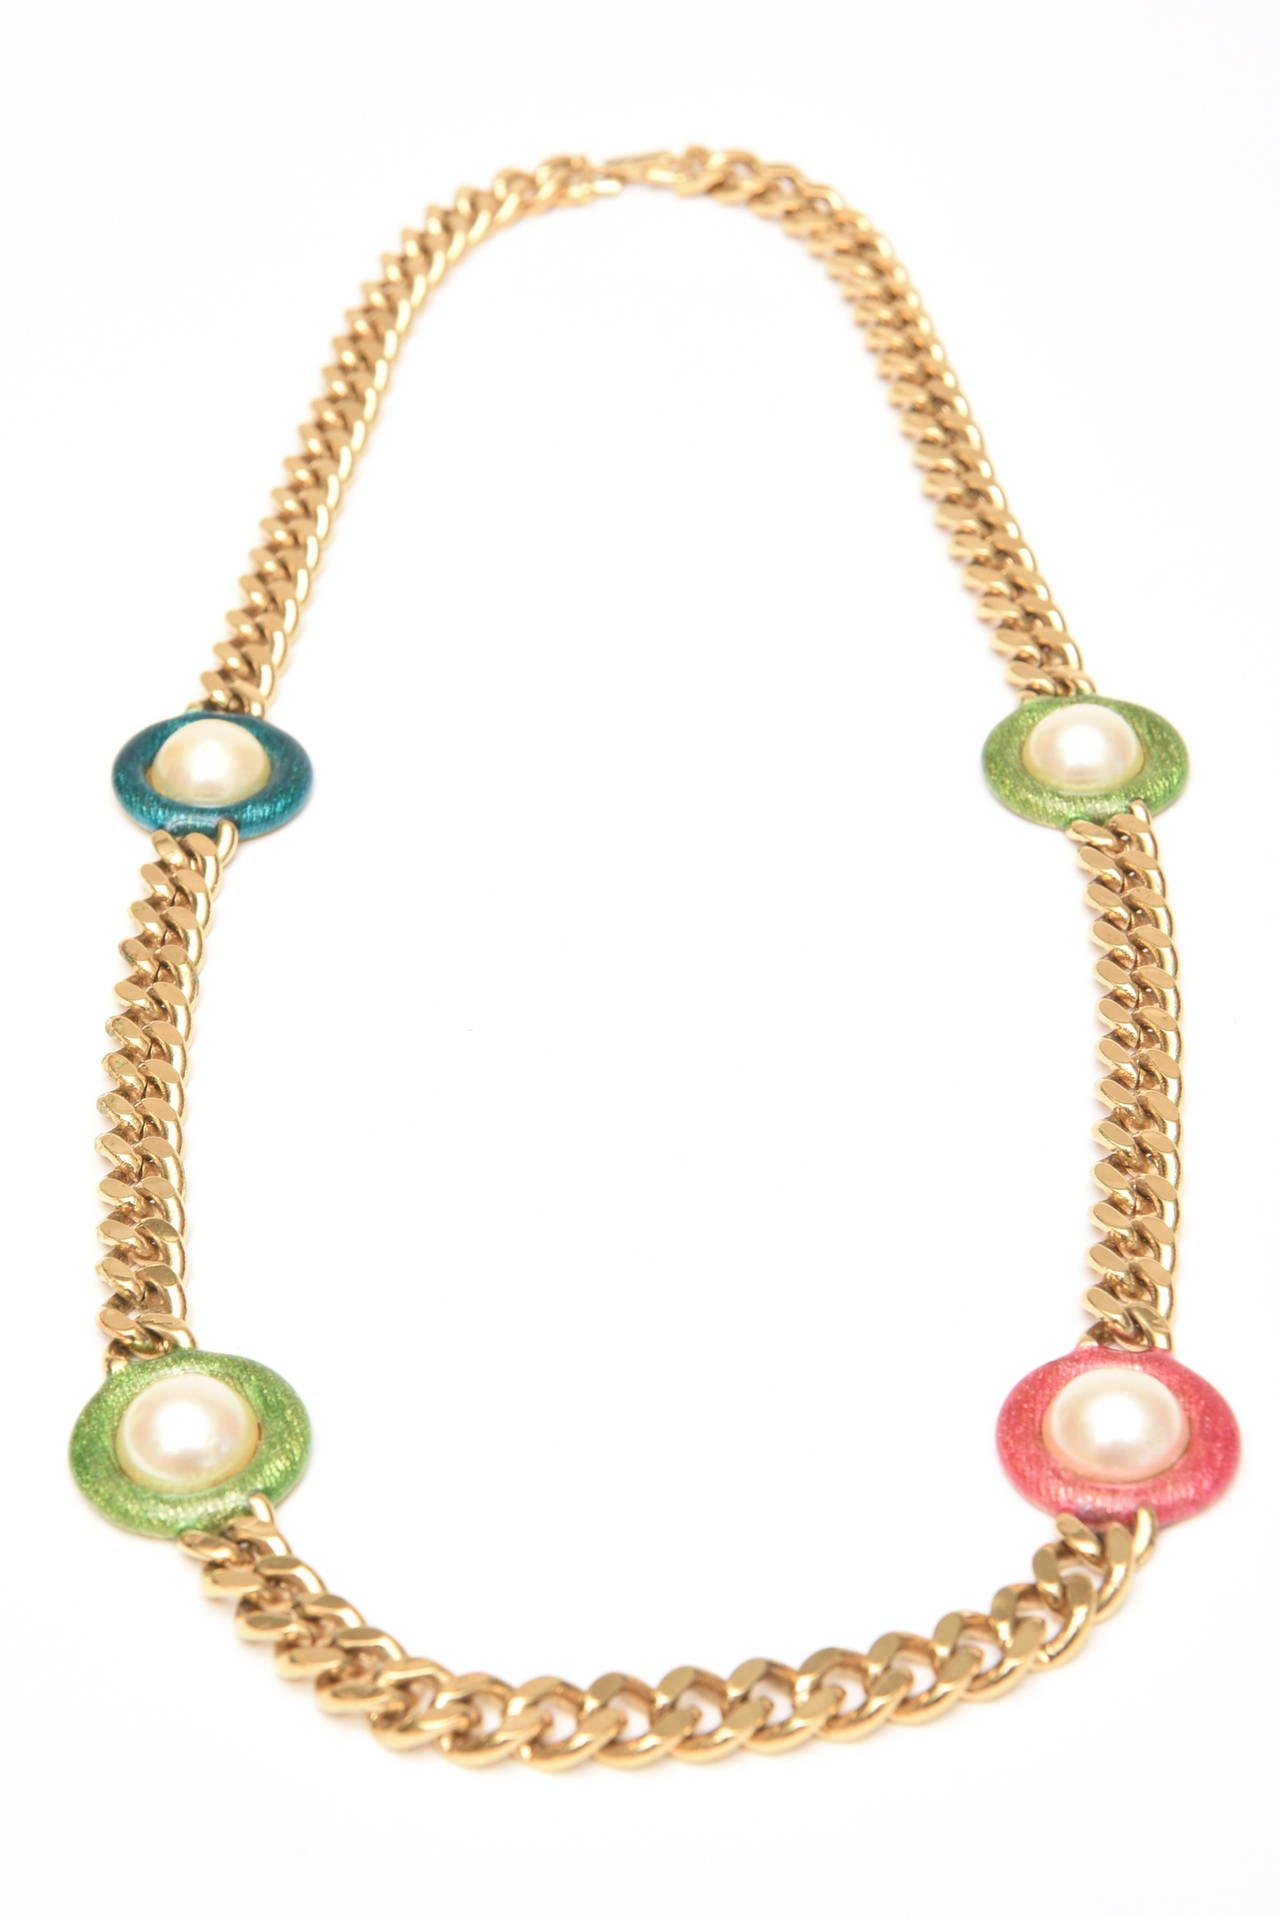 Guy Laroche Gold Tone Chain Link Strand Necklace with Enamel and Faux Pearl 5